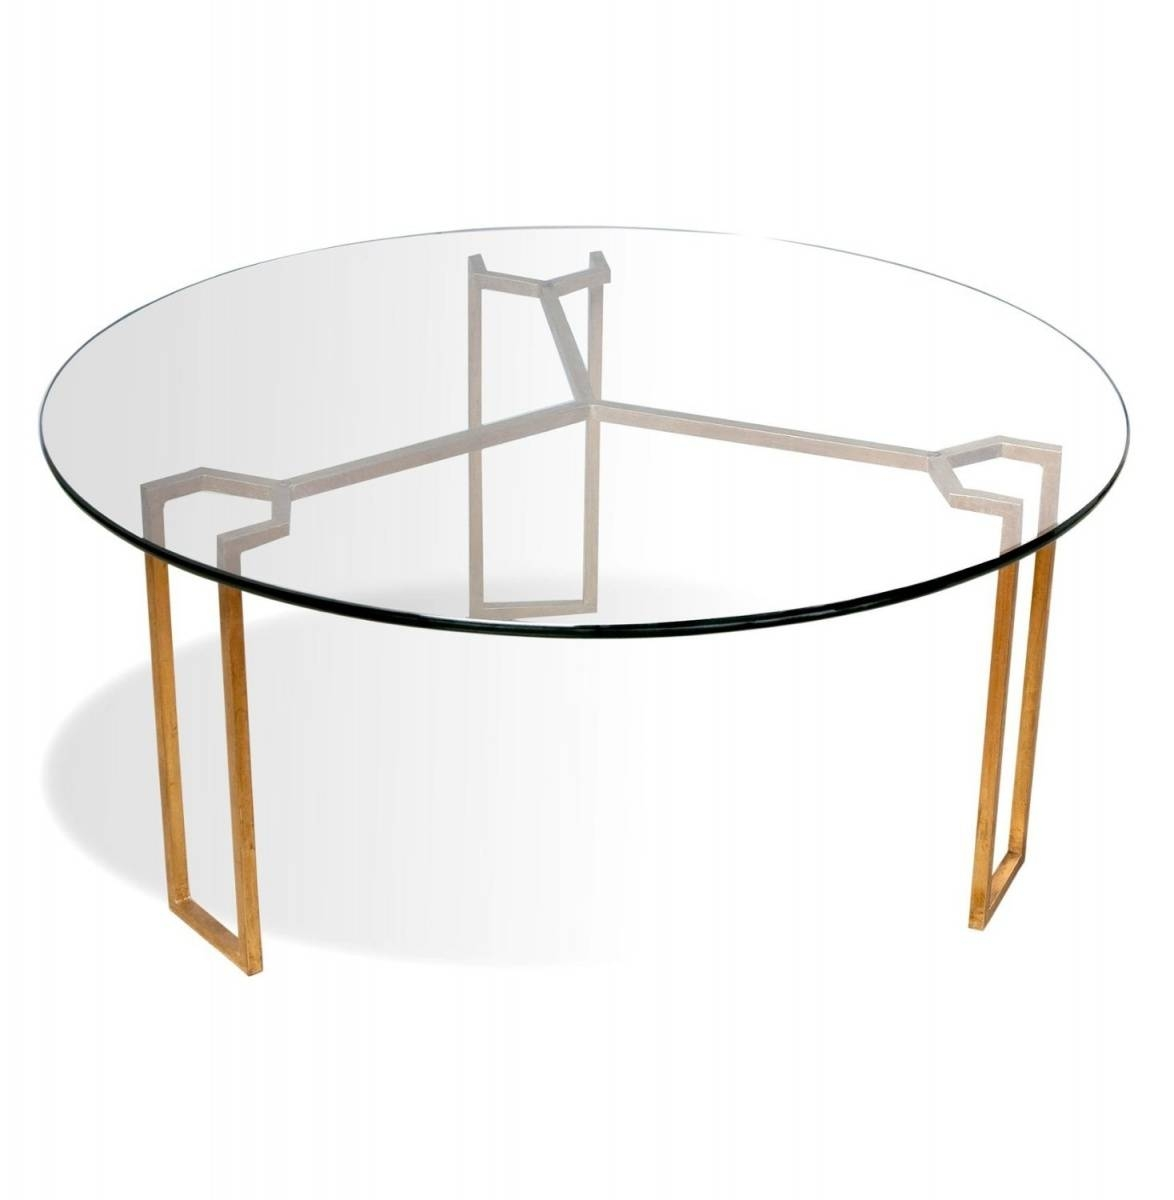 Coffee Tables Ideas: Fabulous Small Round Glass Coffee Table intended for Small Glass Coffee Tables (Image 6 of 15)